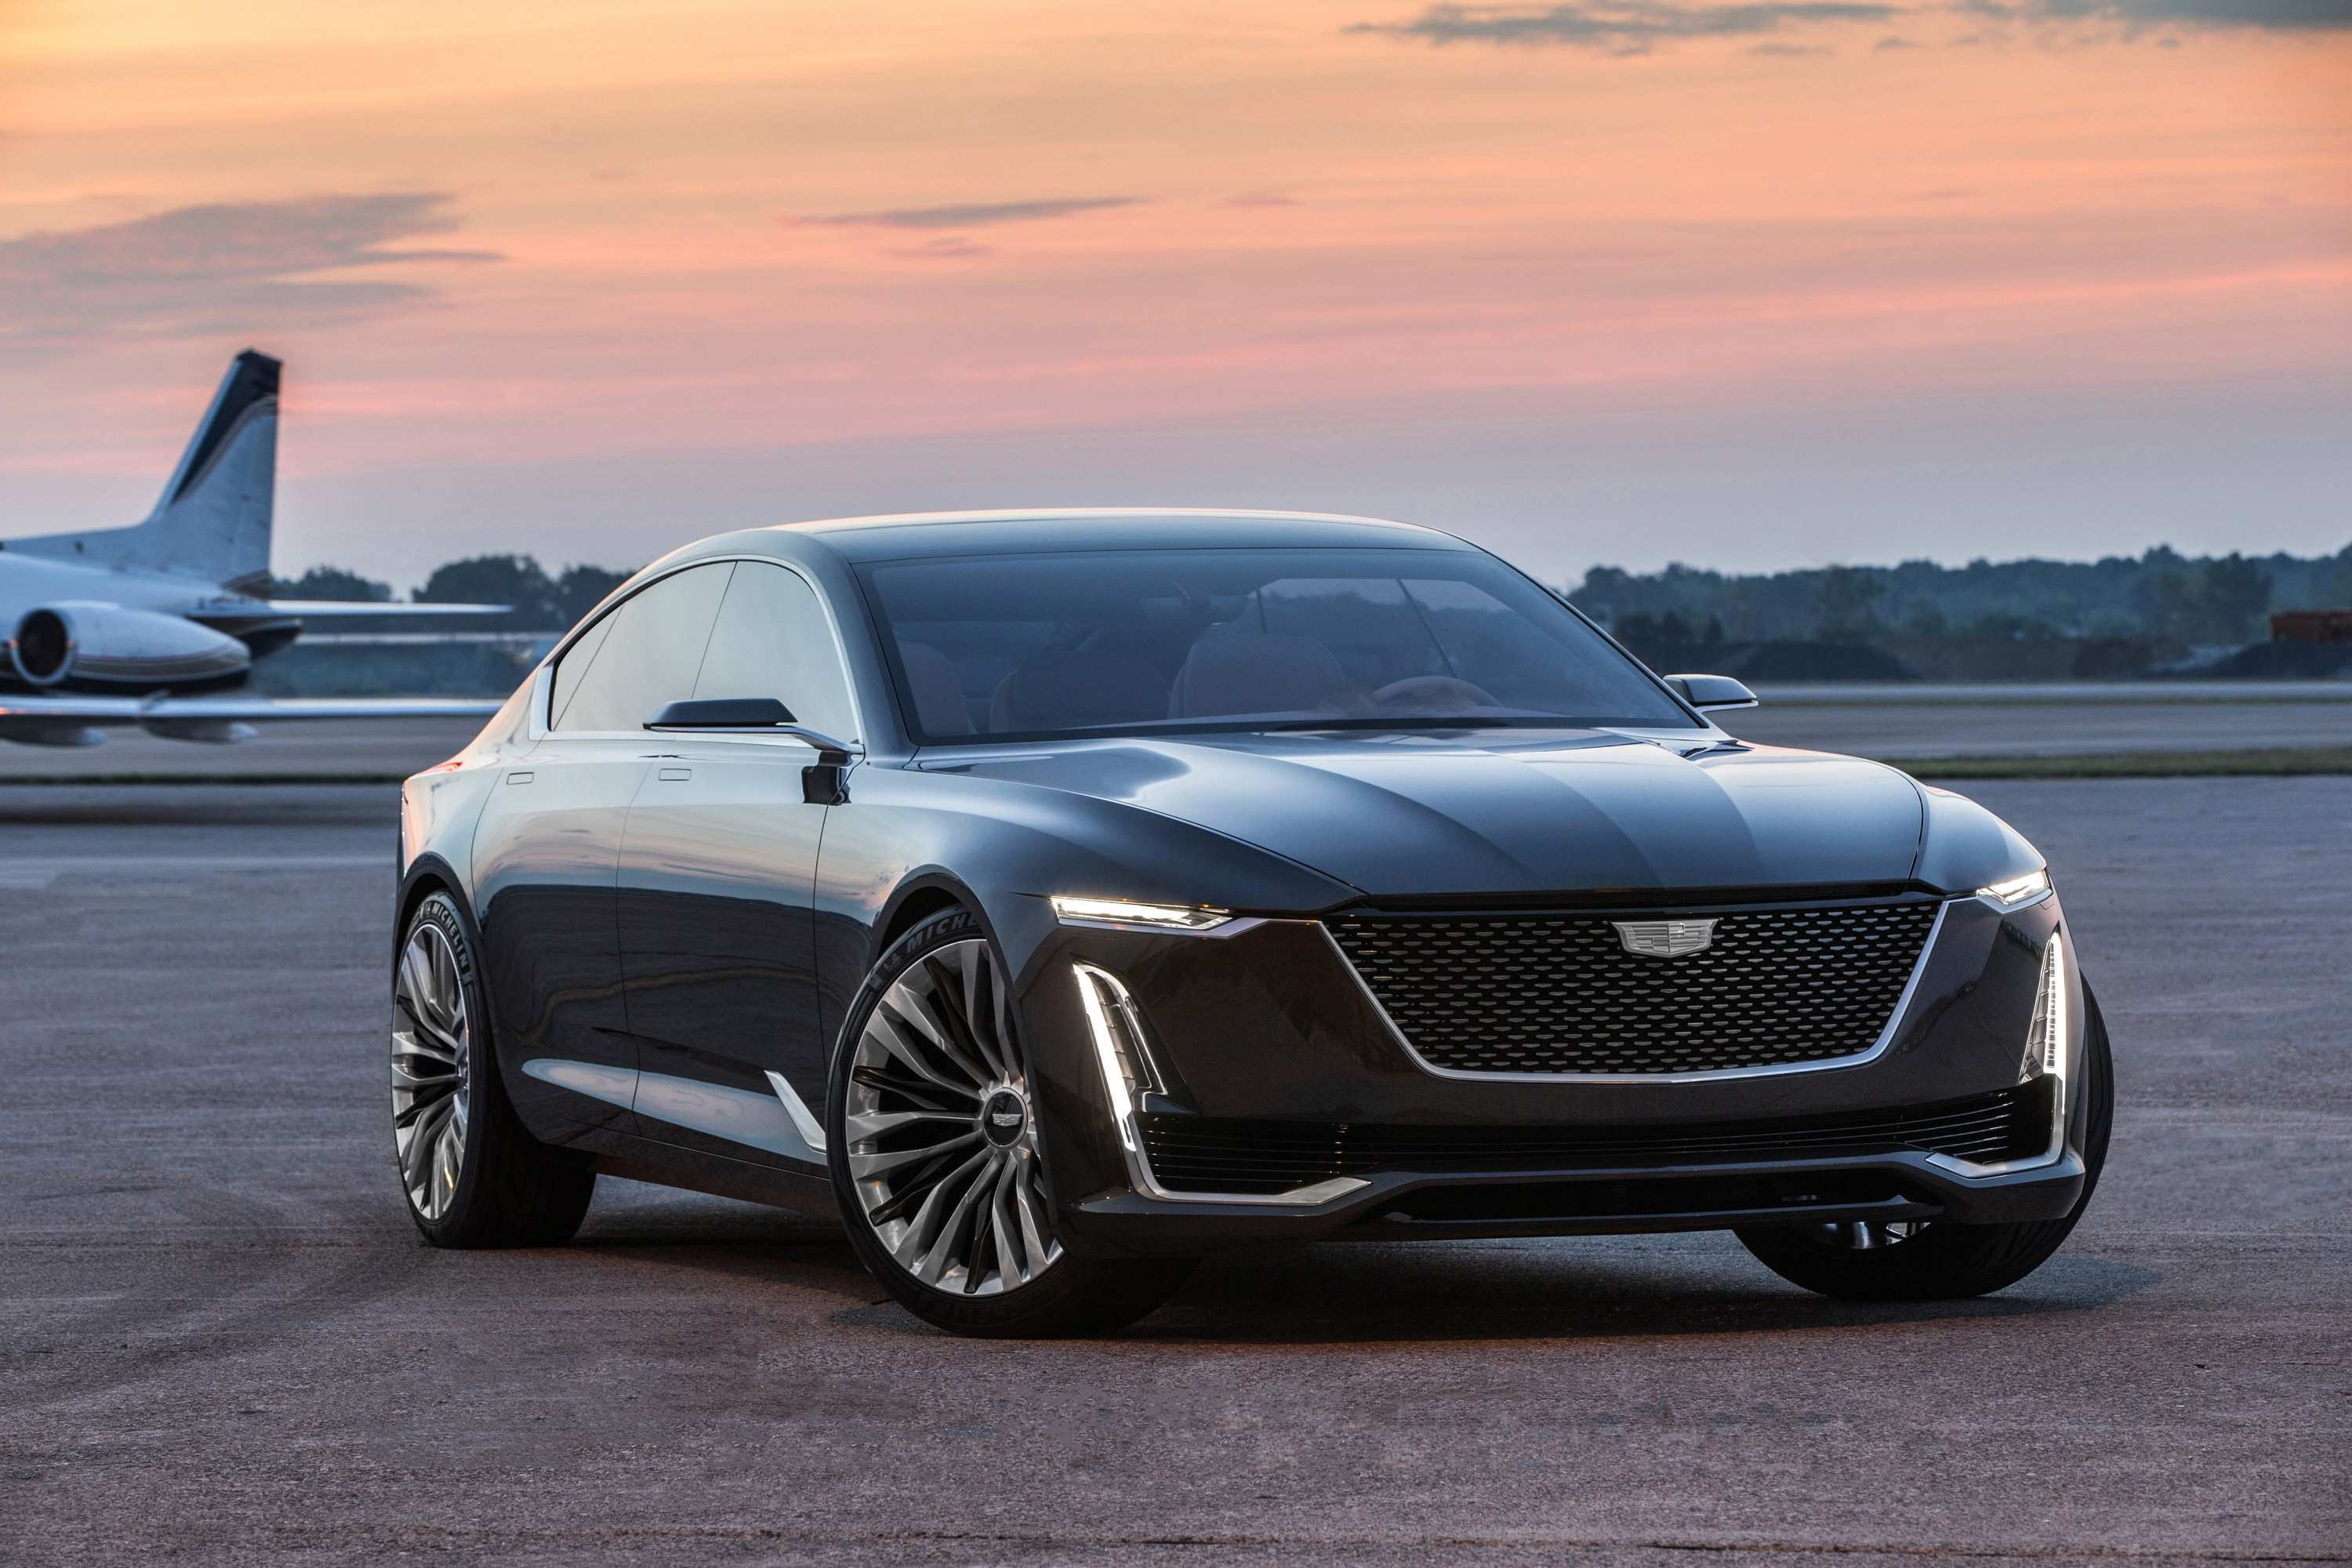 12 Great 2020 Cadillac Cts V Redesign and Concept for 2020 Cadillac Cts V